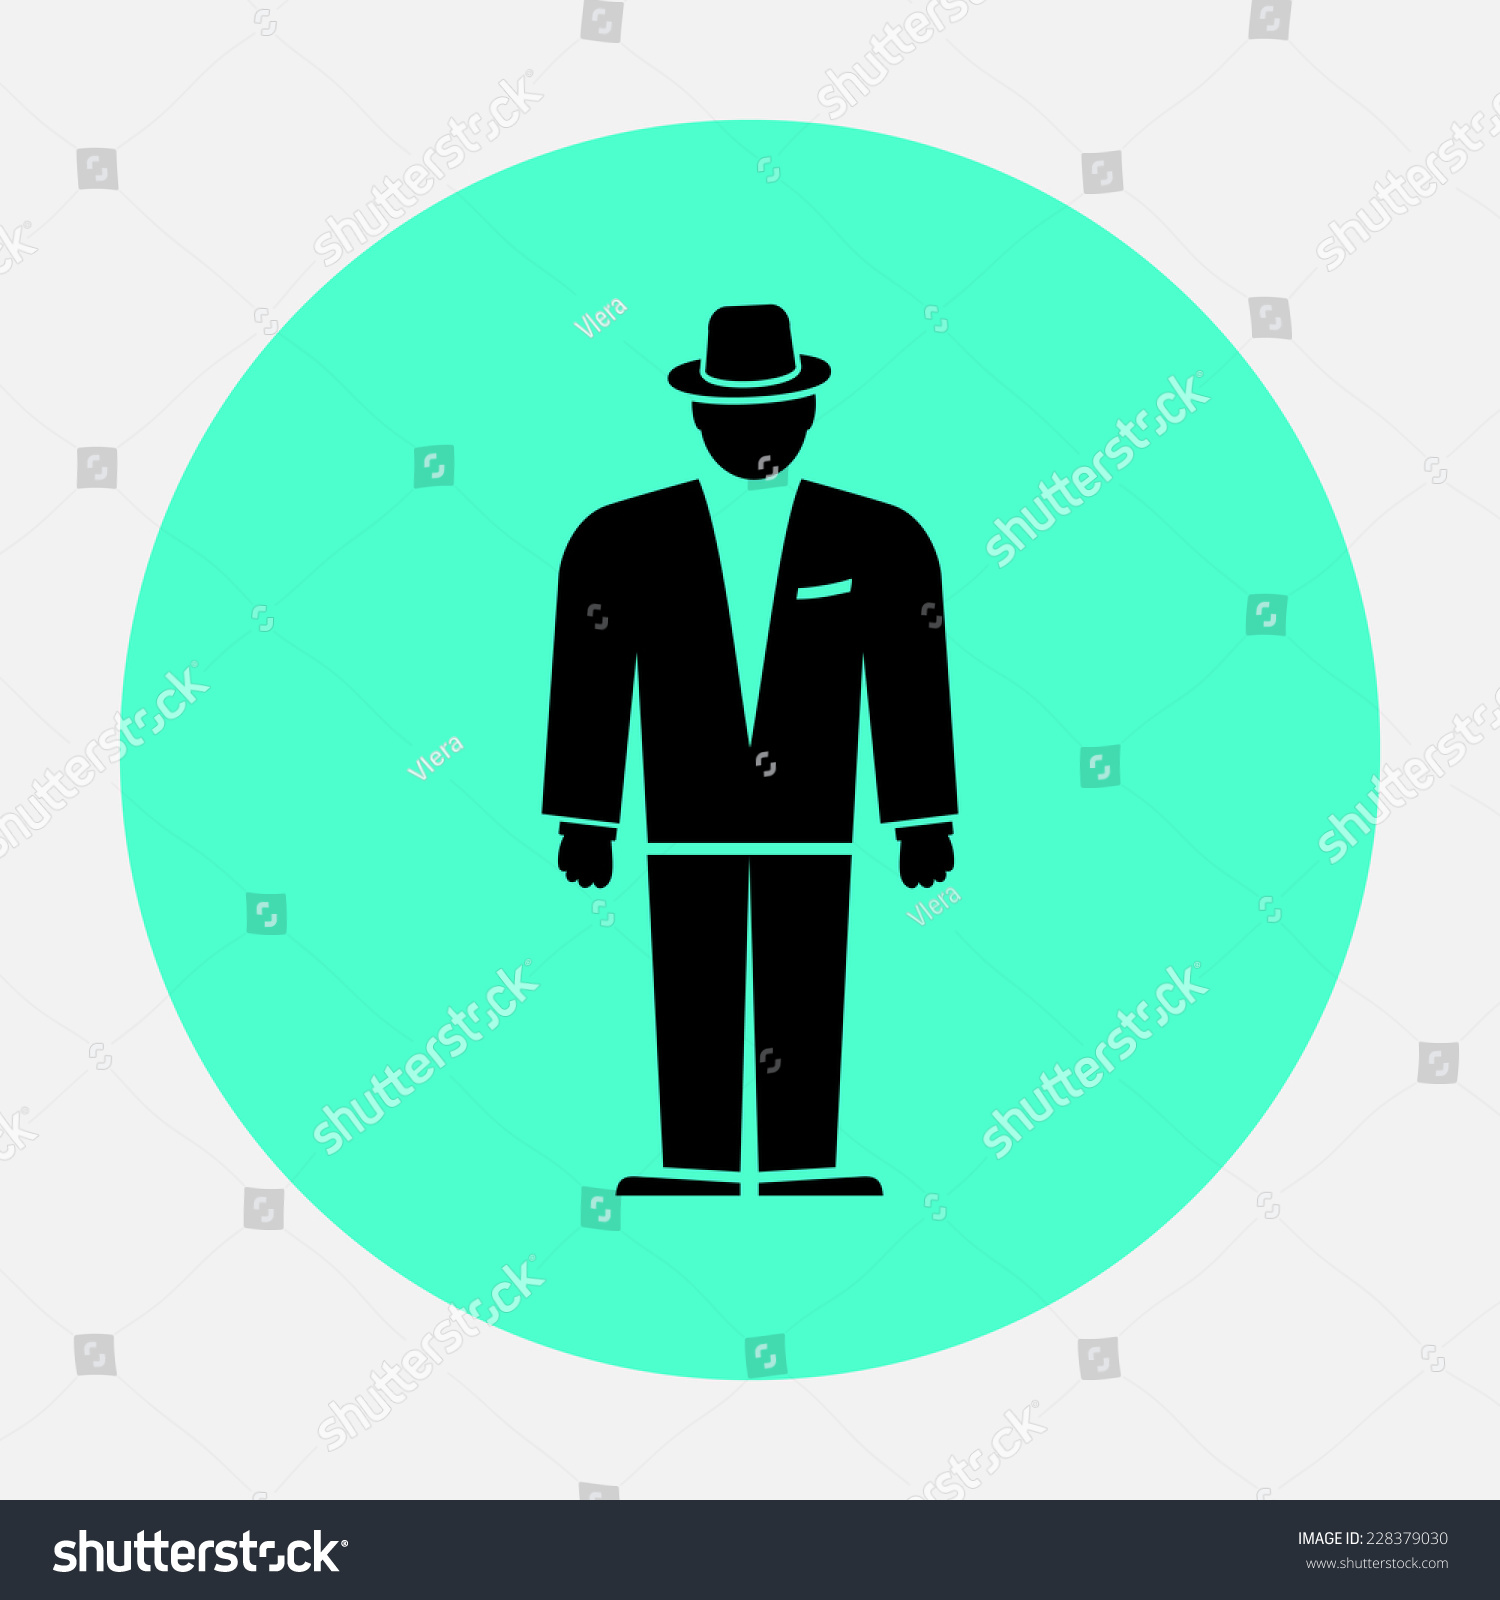 cb972cba3d28 Businessman icon. Man head in suit with hat. Black circle flat icon. Vector  isolated - Vector